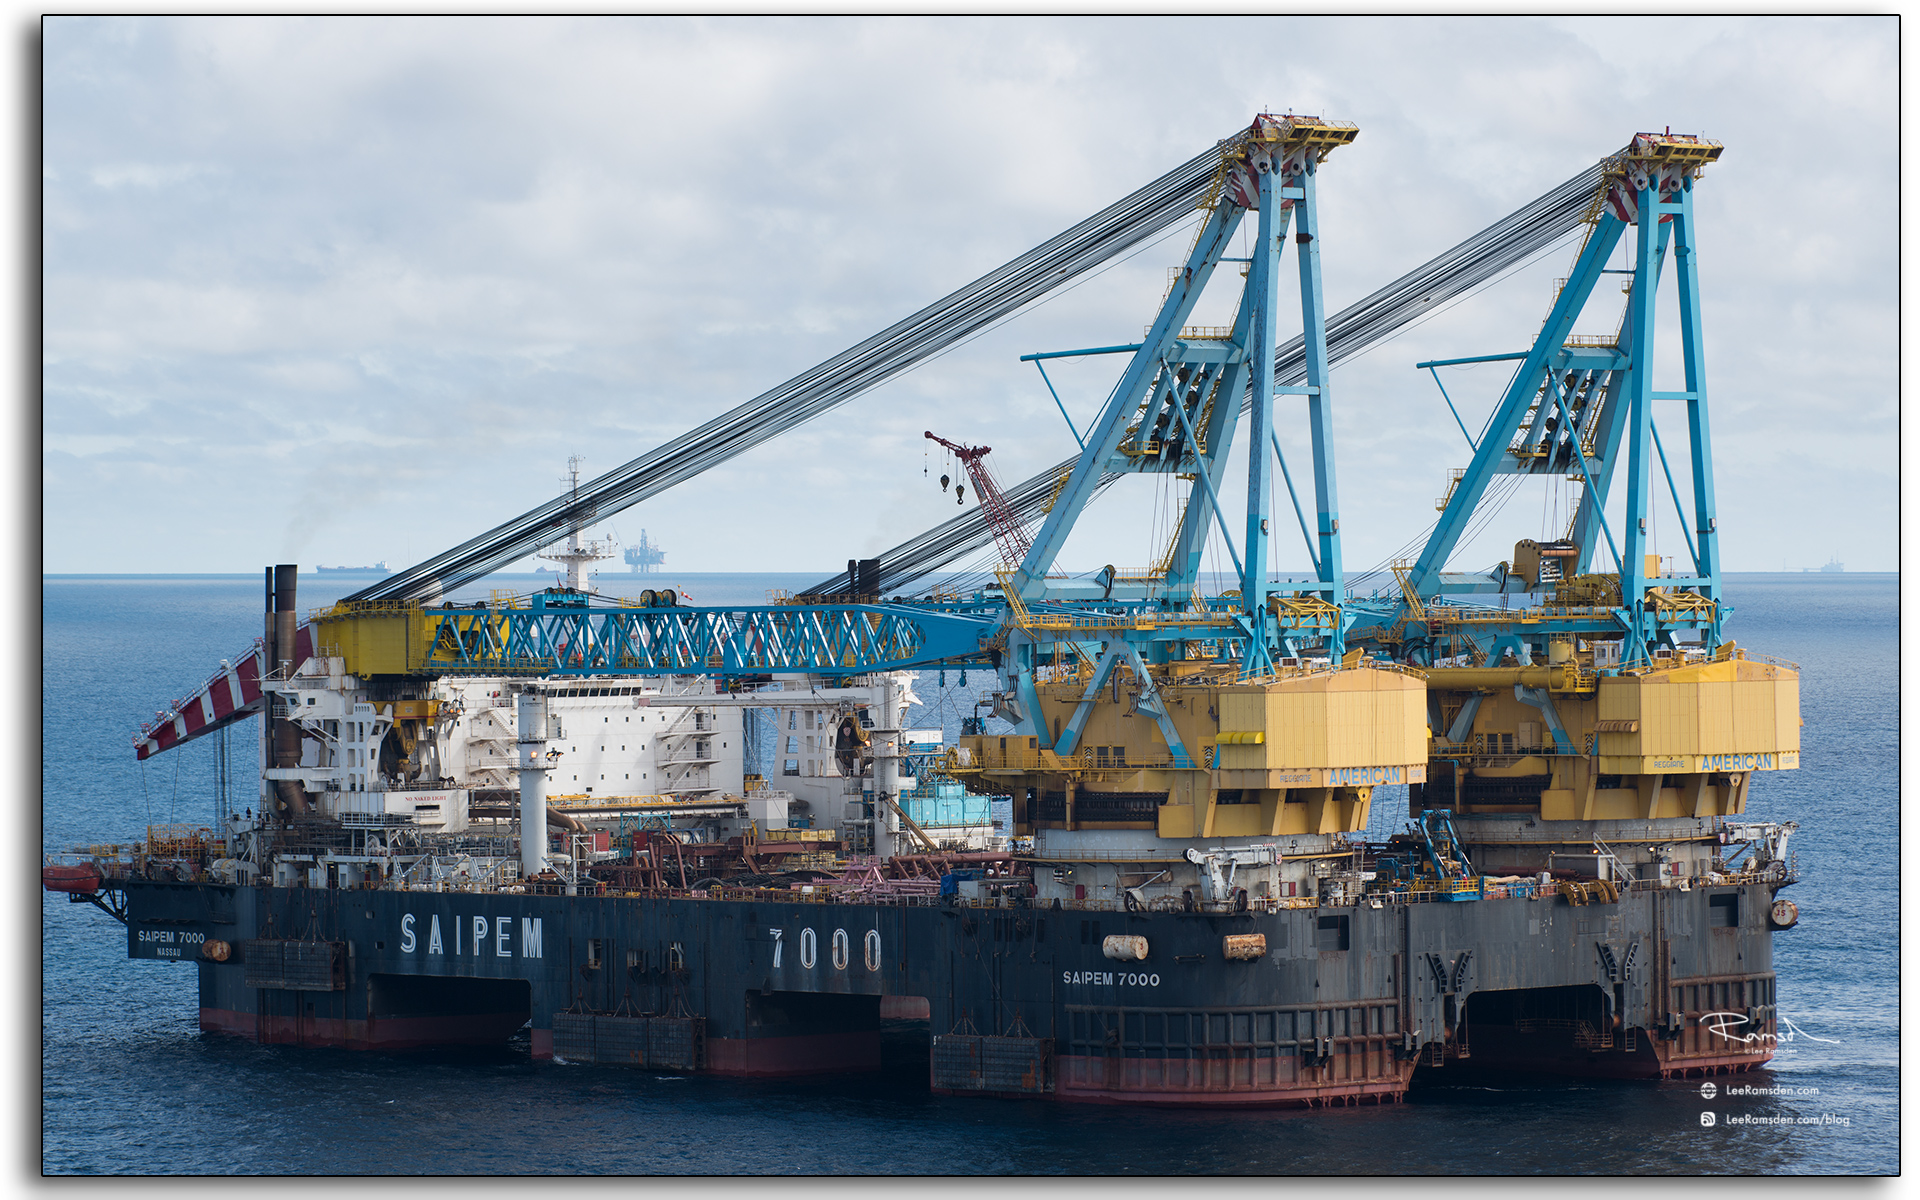 S7000, duel crane, heavy lifting, offshore, oil and gas